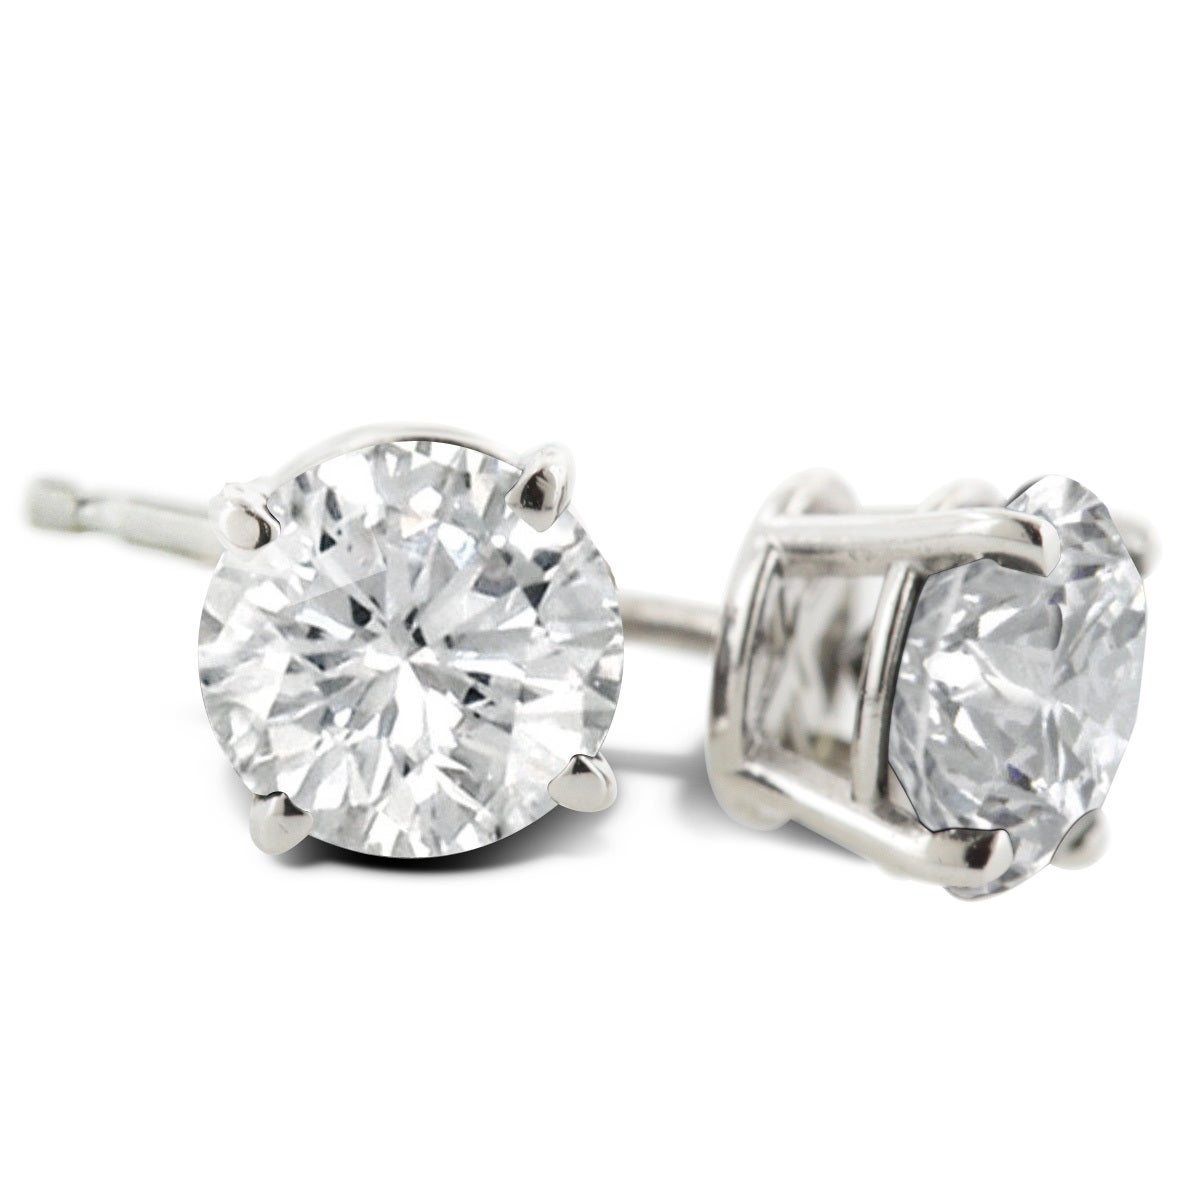 1 Carat Diamond Stud Earrings In Platinum J K I2 I3 On Free Shipping Today 10175298